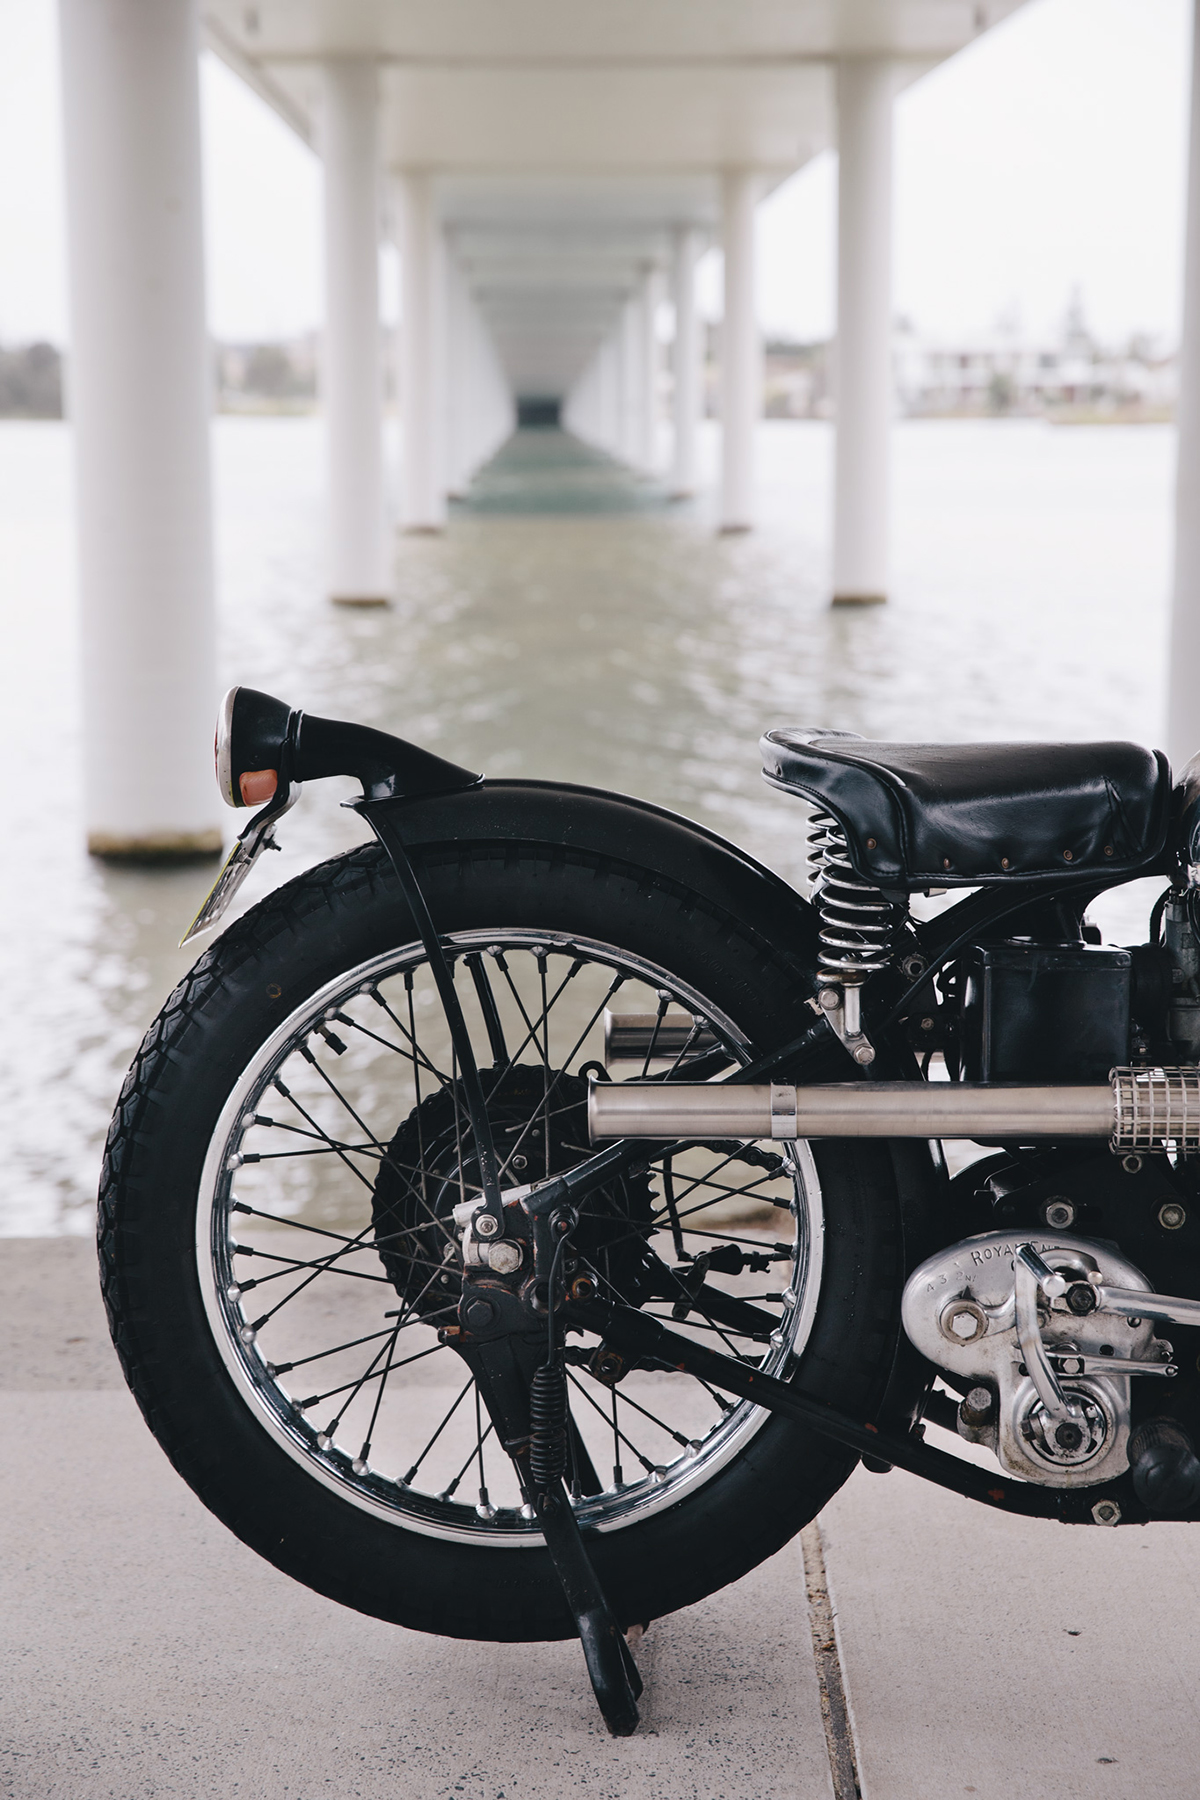 royal_enfield_bobber_j2-42